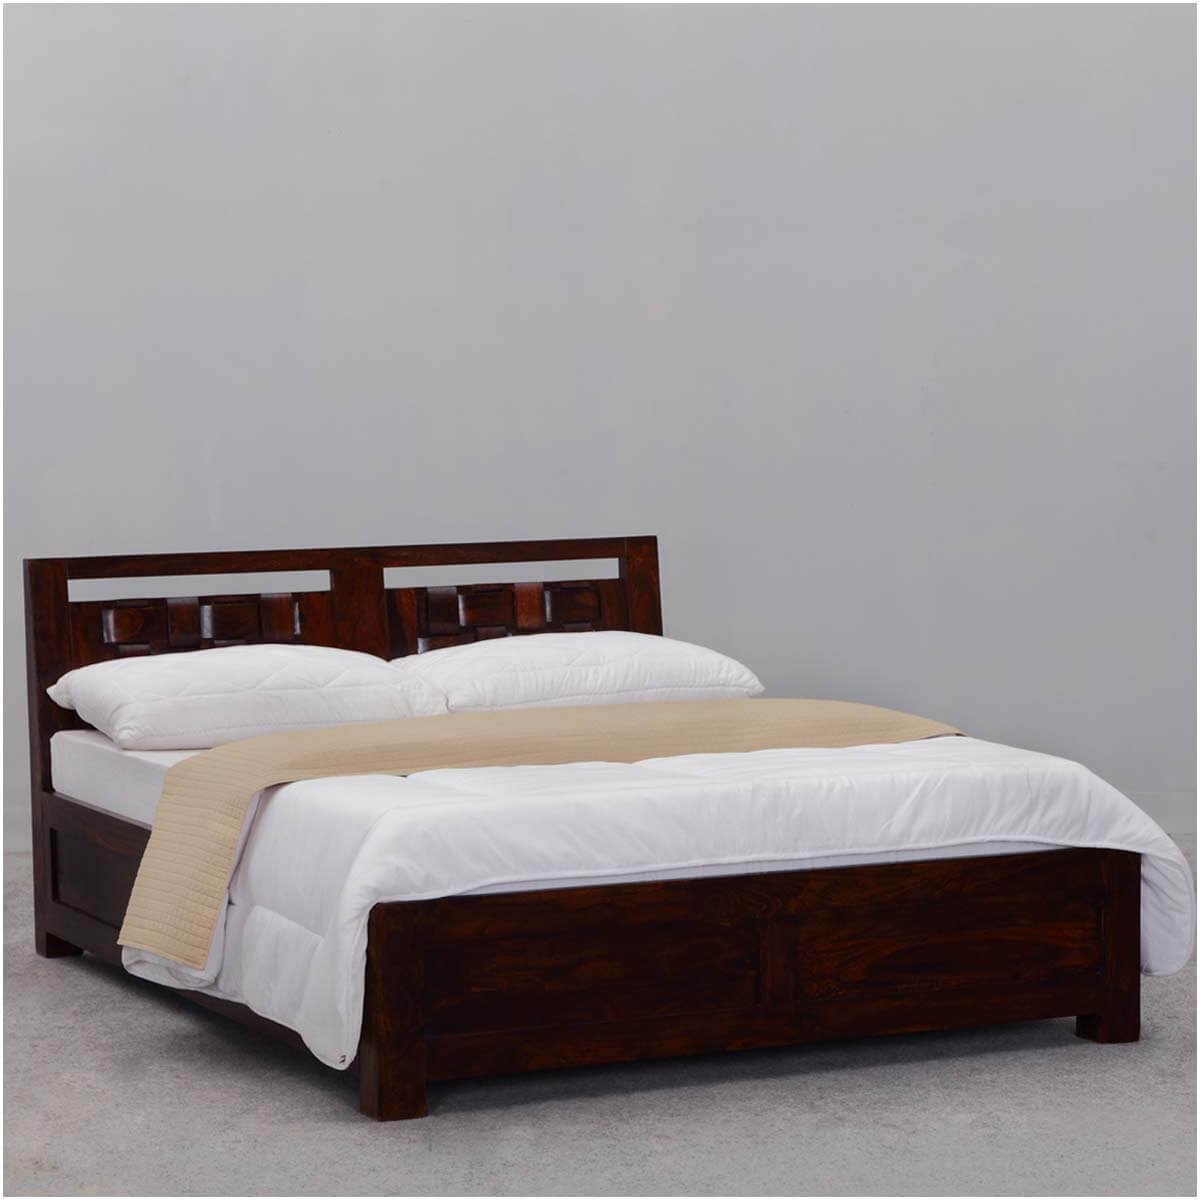 modern rustic minnesota solid wood platform bed w headboard. Black Bedroom Furniture Sets. Home Design Ideas